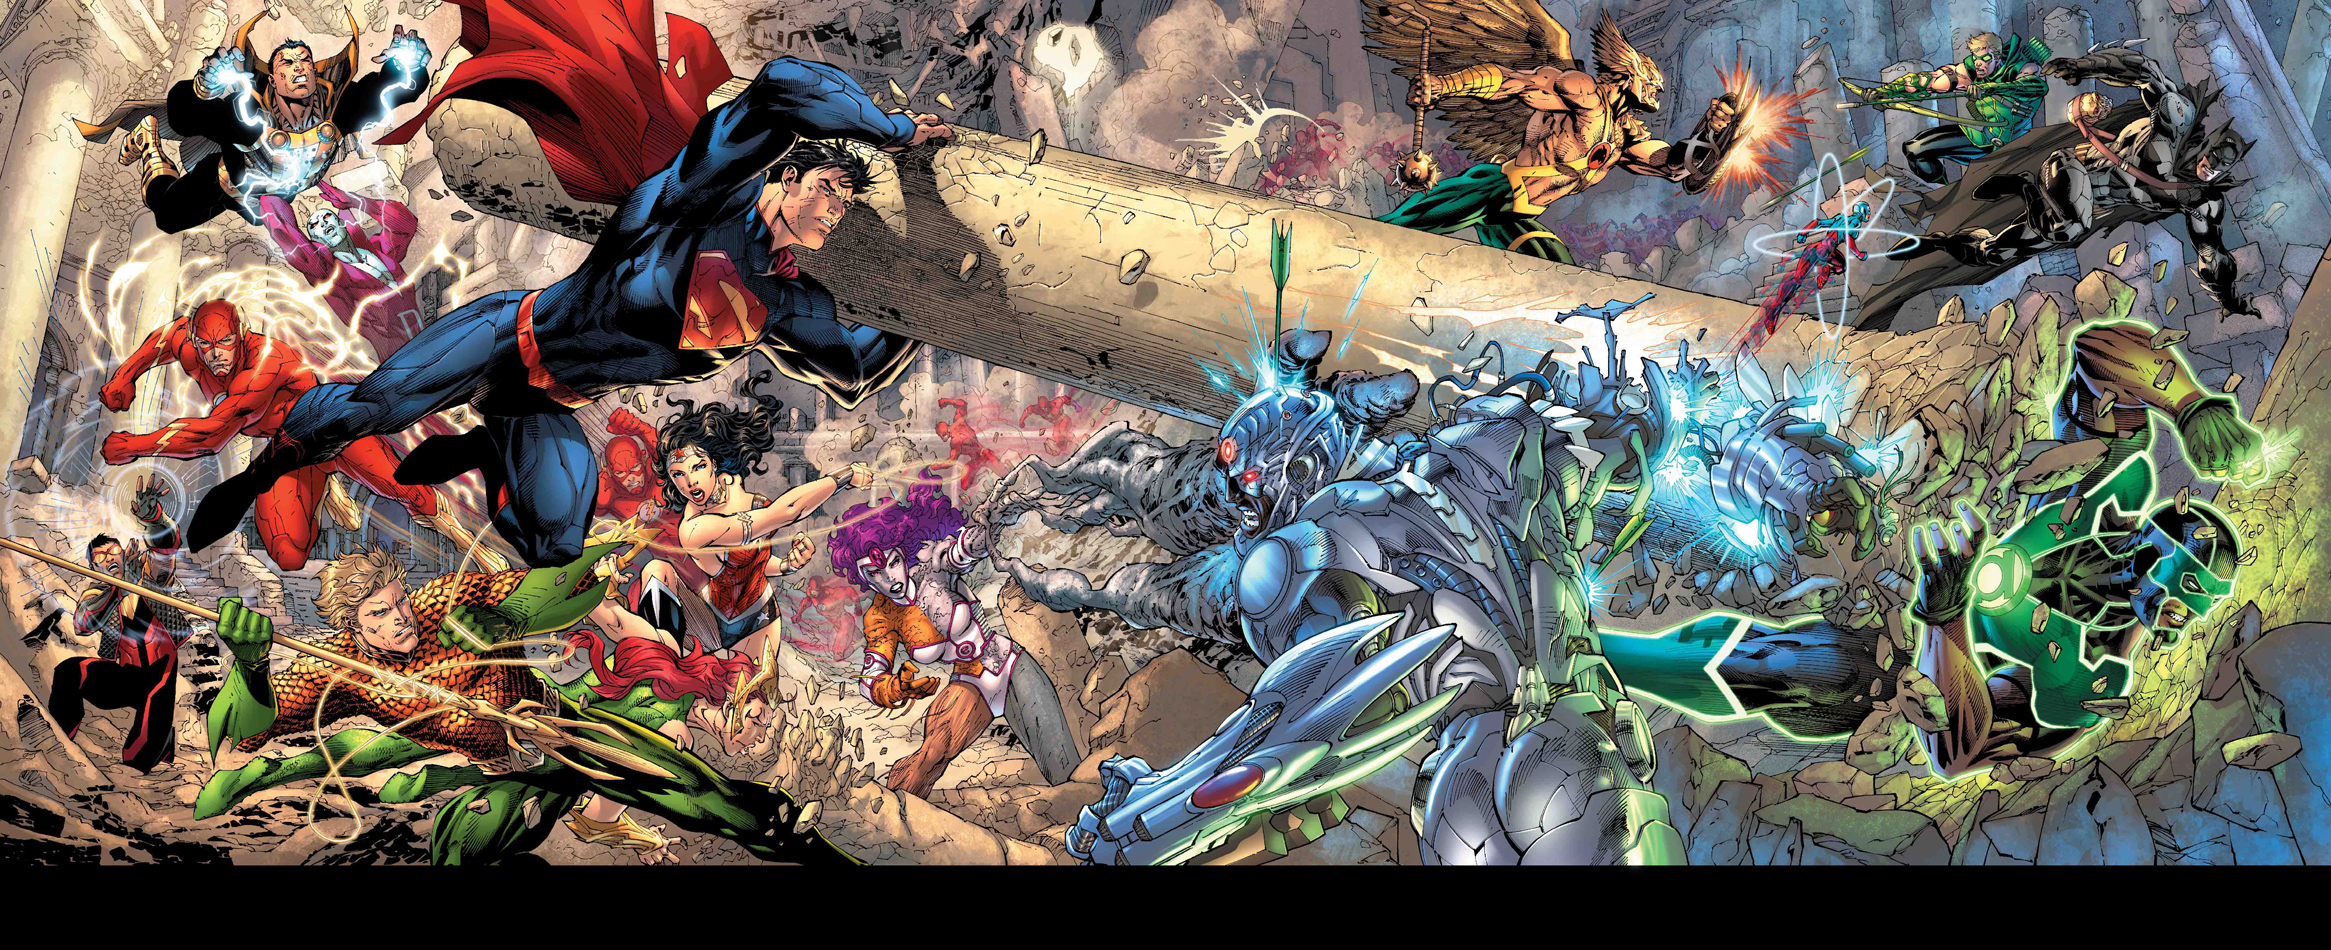 Gatefold Jim Lee Trinity War2 Entre les cases et les lignes de New 52 n°1